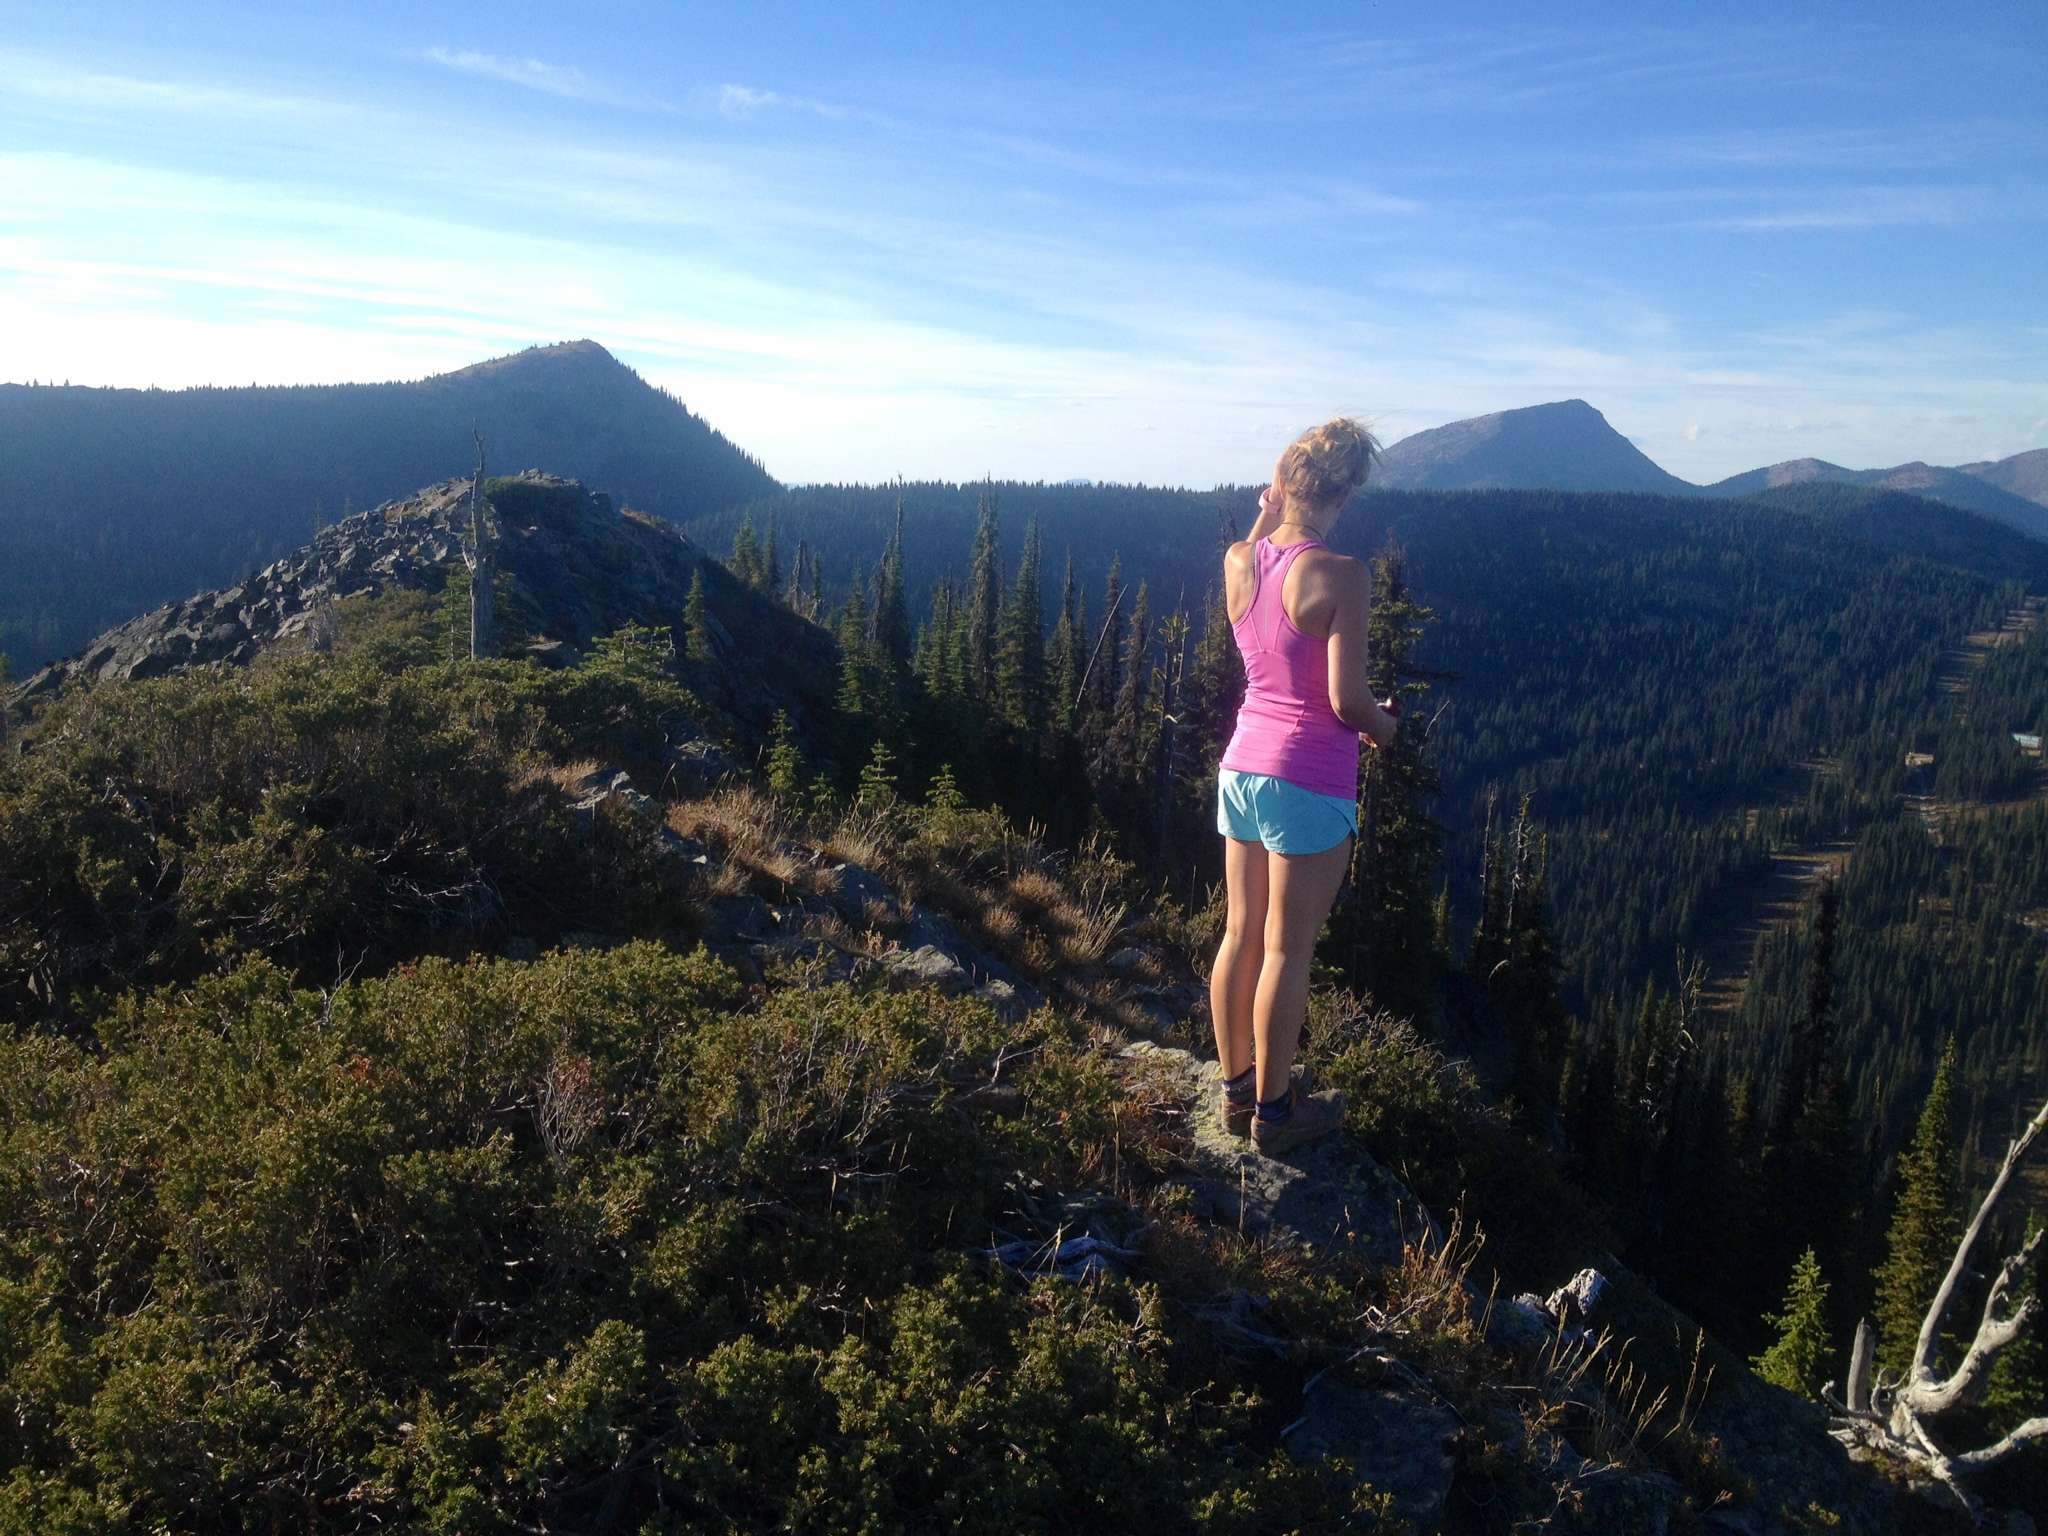 inov-8 blog world's best trails. Canada. Mike Hopkins